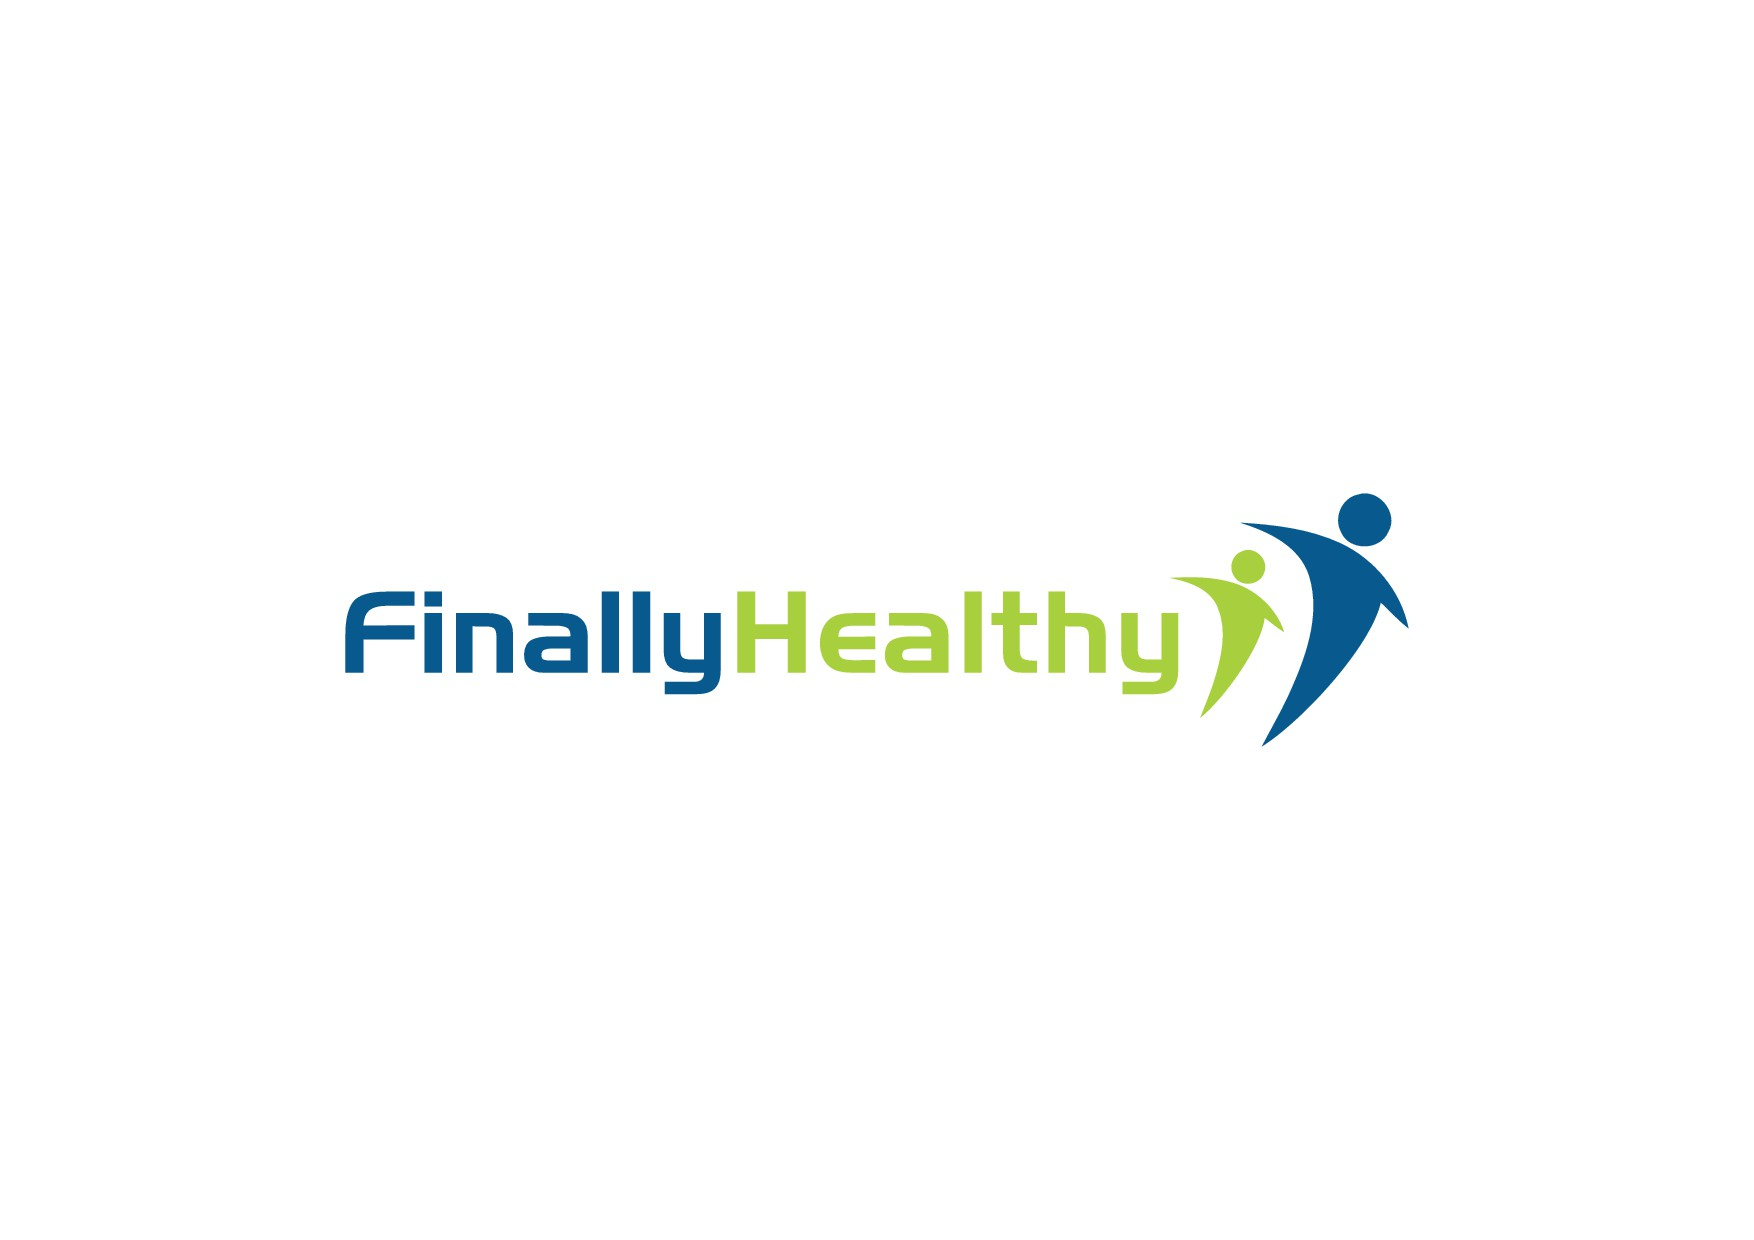 """Imagine you're """"Finally Healthy,"""" after trying for so long. Capture that feeling for our logo"""